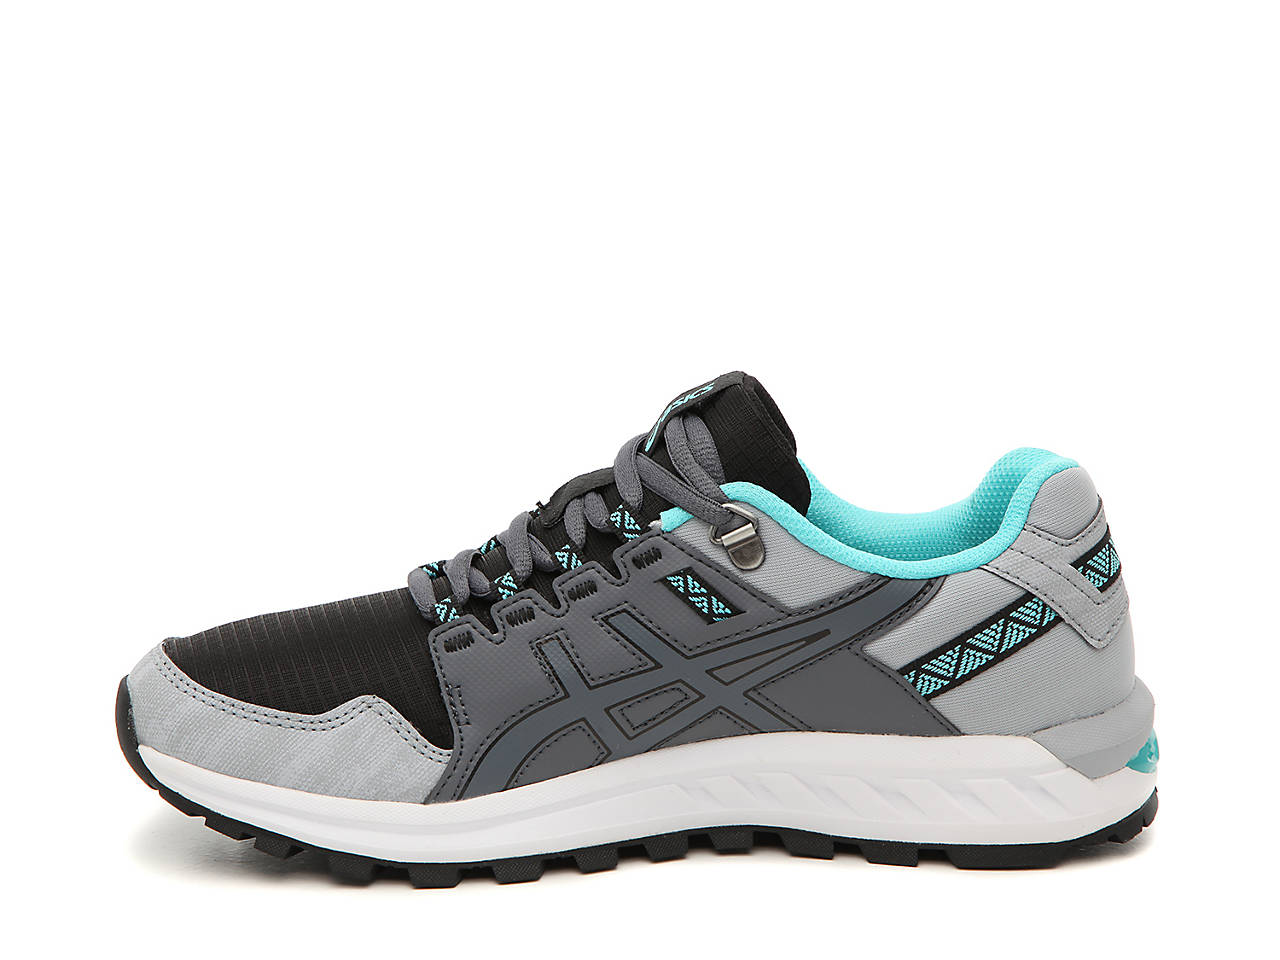 ASICS Gel Citrek Running Shoe Women's Women's Shoes DSW  DSW